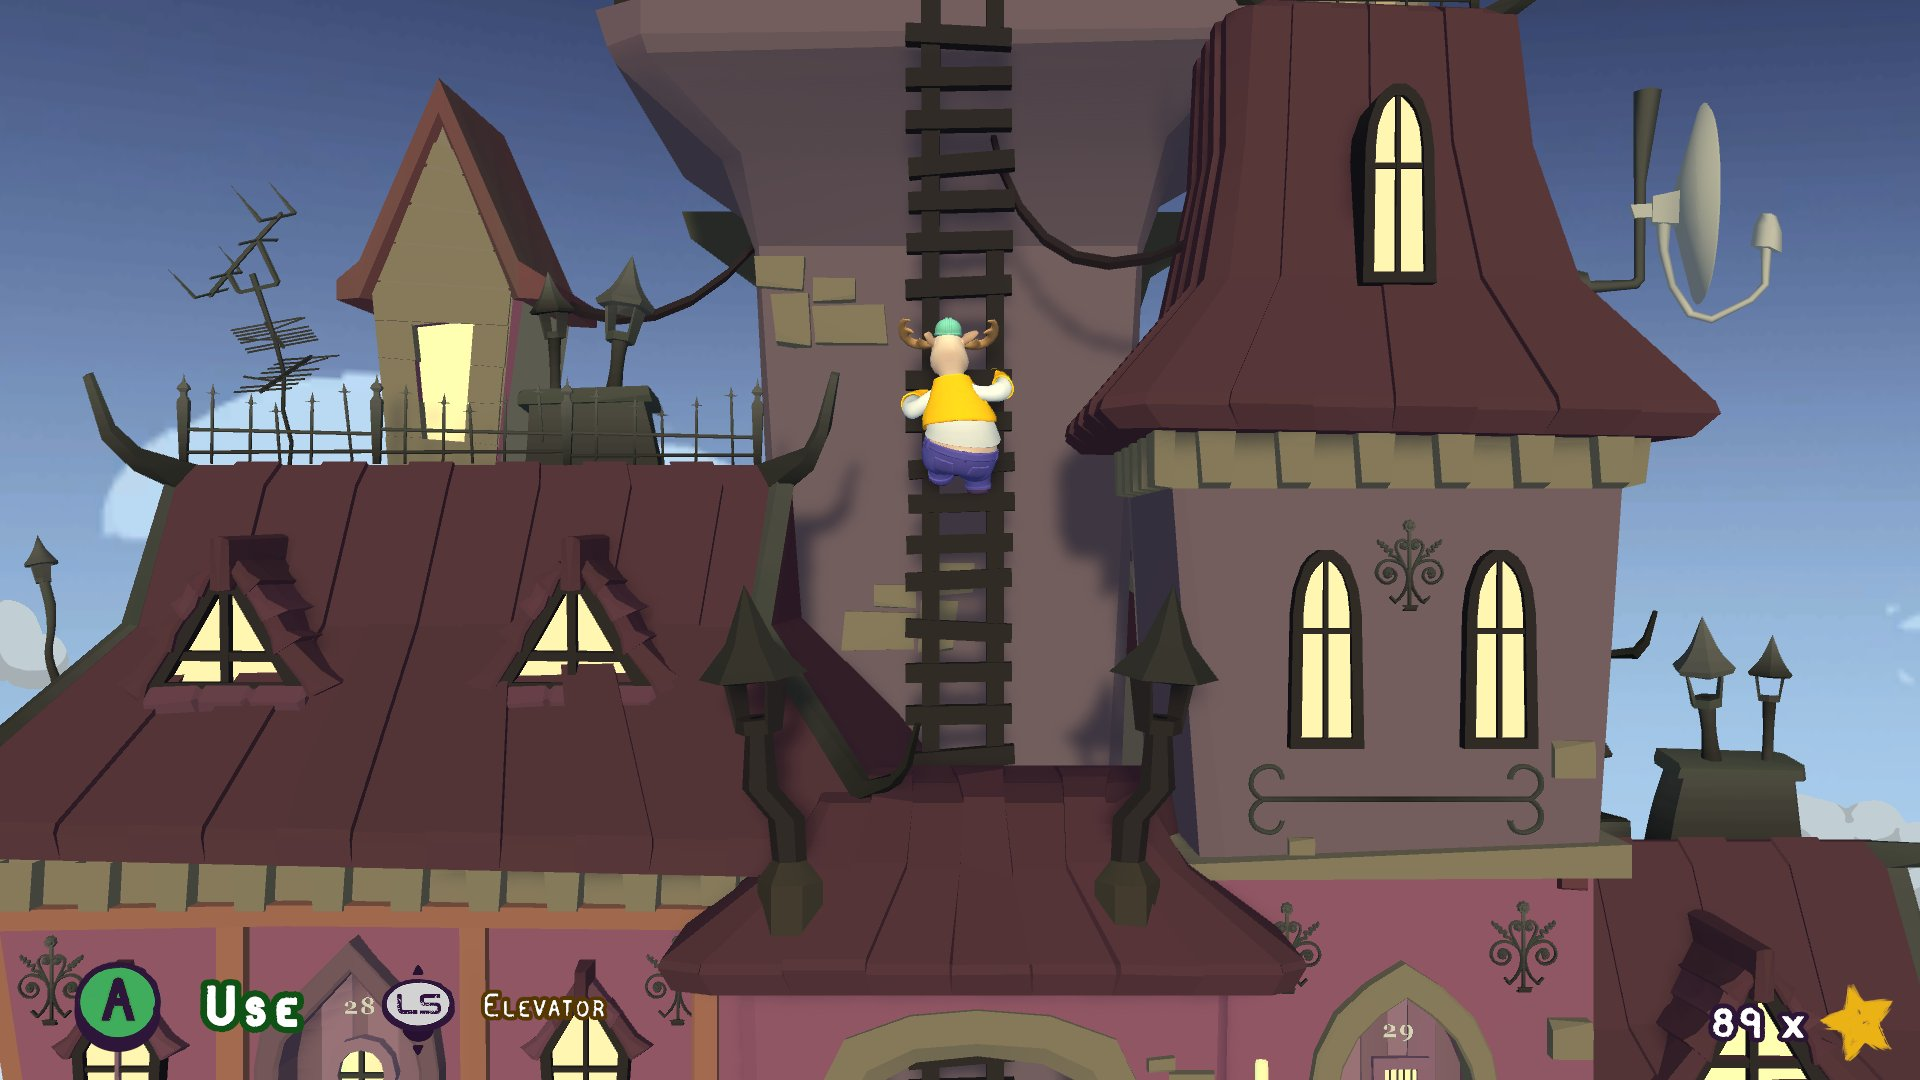 A screenshot from Tools Up! with your character, wearing reindeer antlers, climbing the side of a spooky mansion.